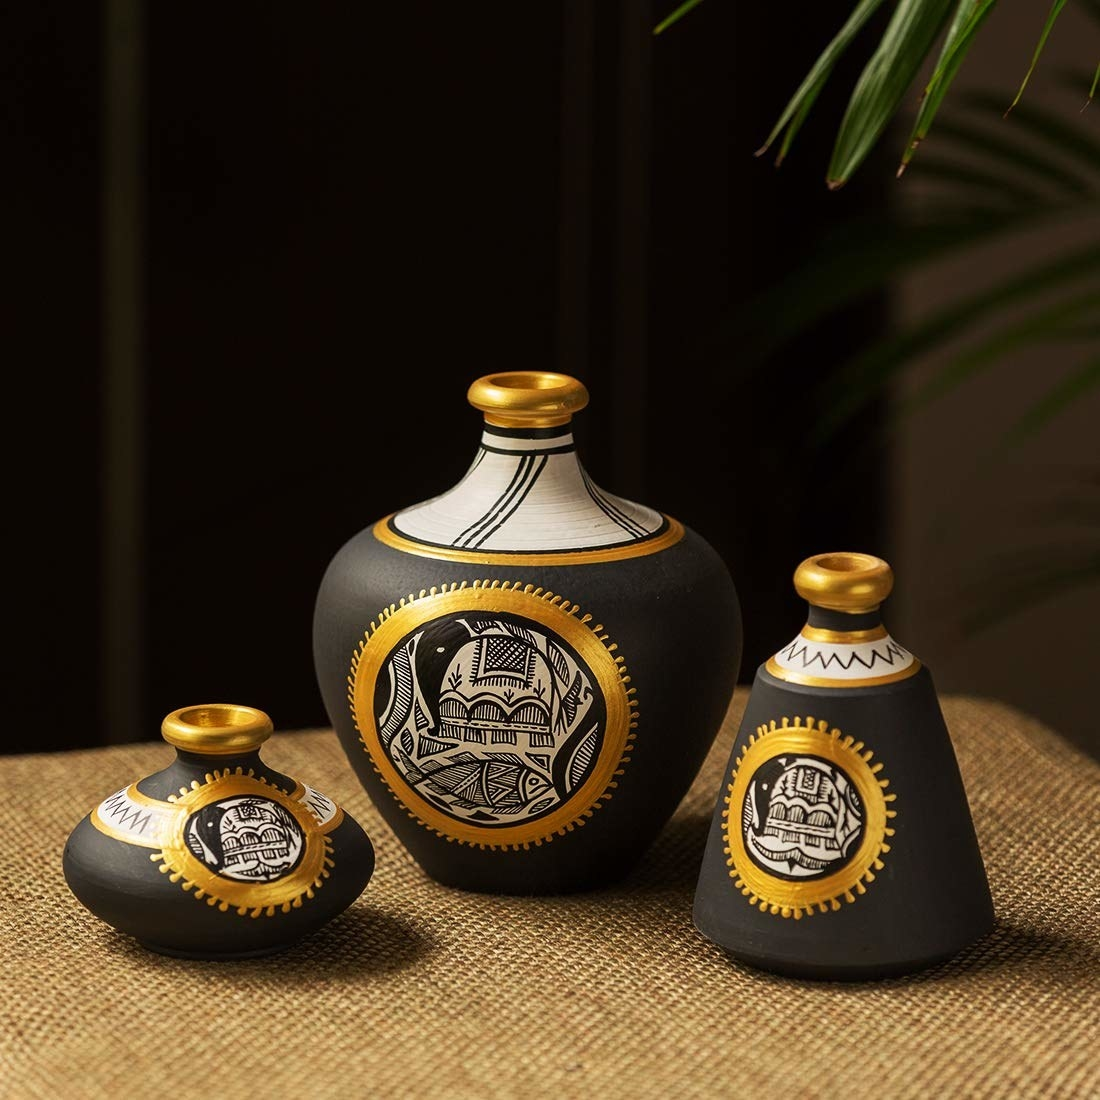 A set of 3 terracotta vases in black and gold of different sizes with Madhubani paintings on them